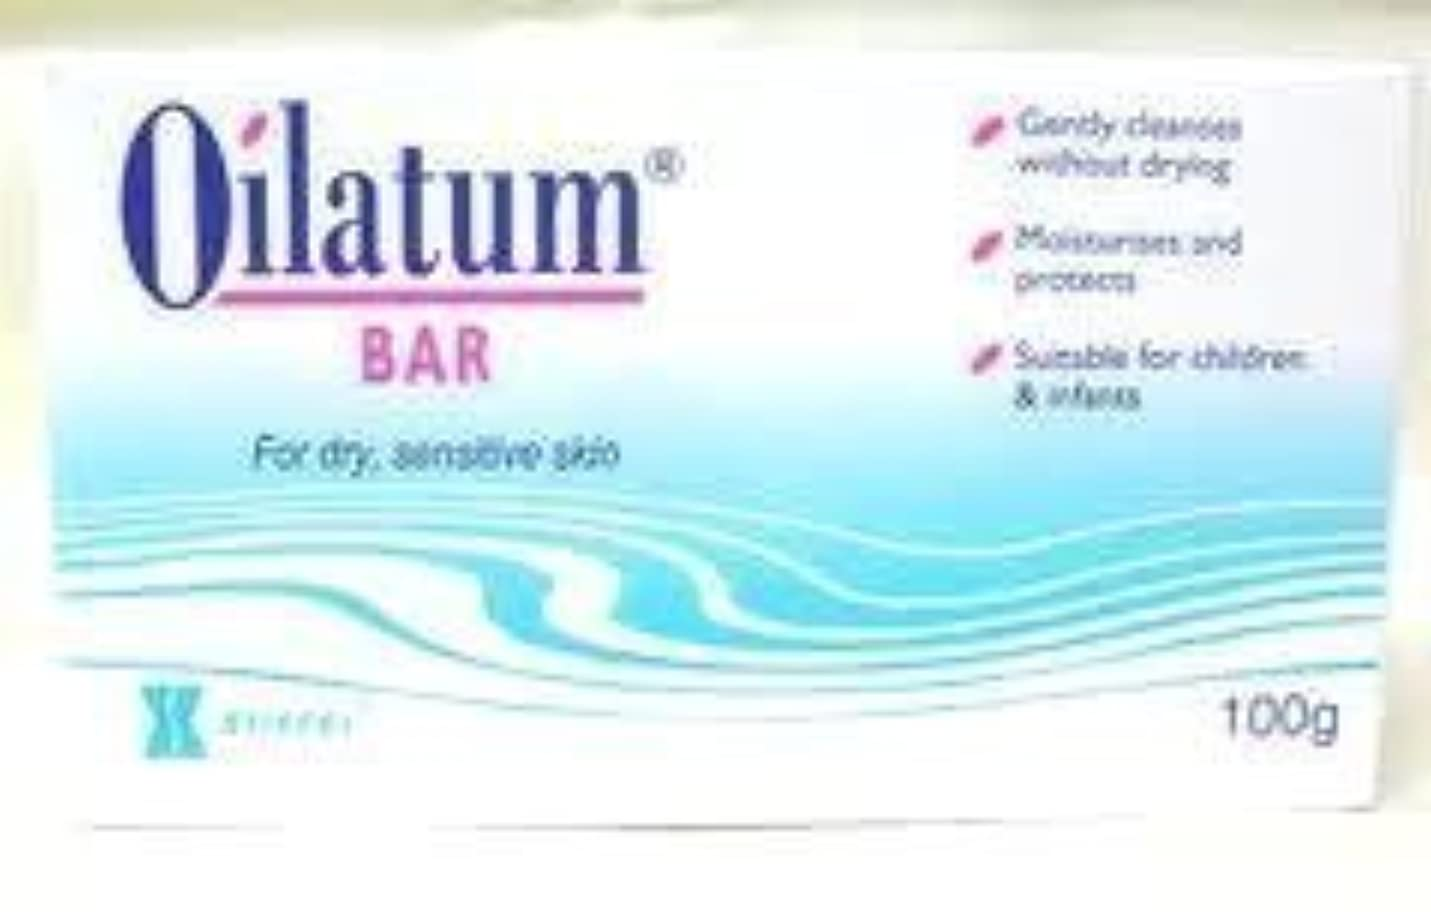 ヒット常識死すべき2 Packs Oilatum Bar Soap for Sensitive Soap Skin Free Shipping 100g. by Oilatum